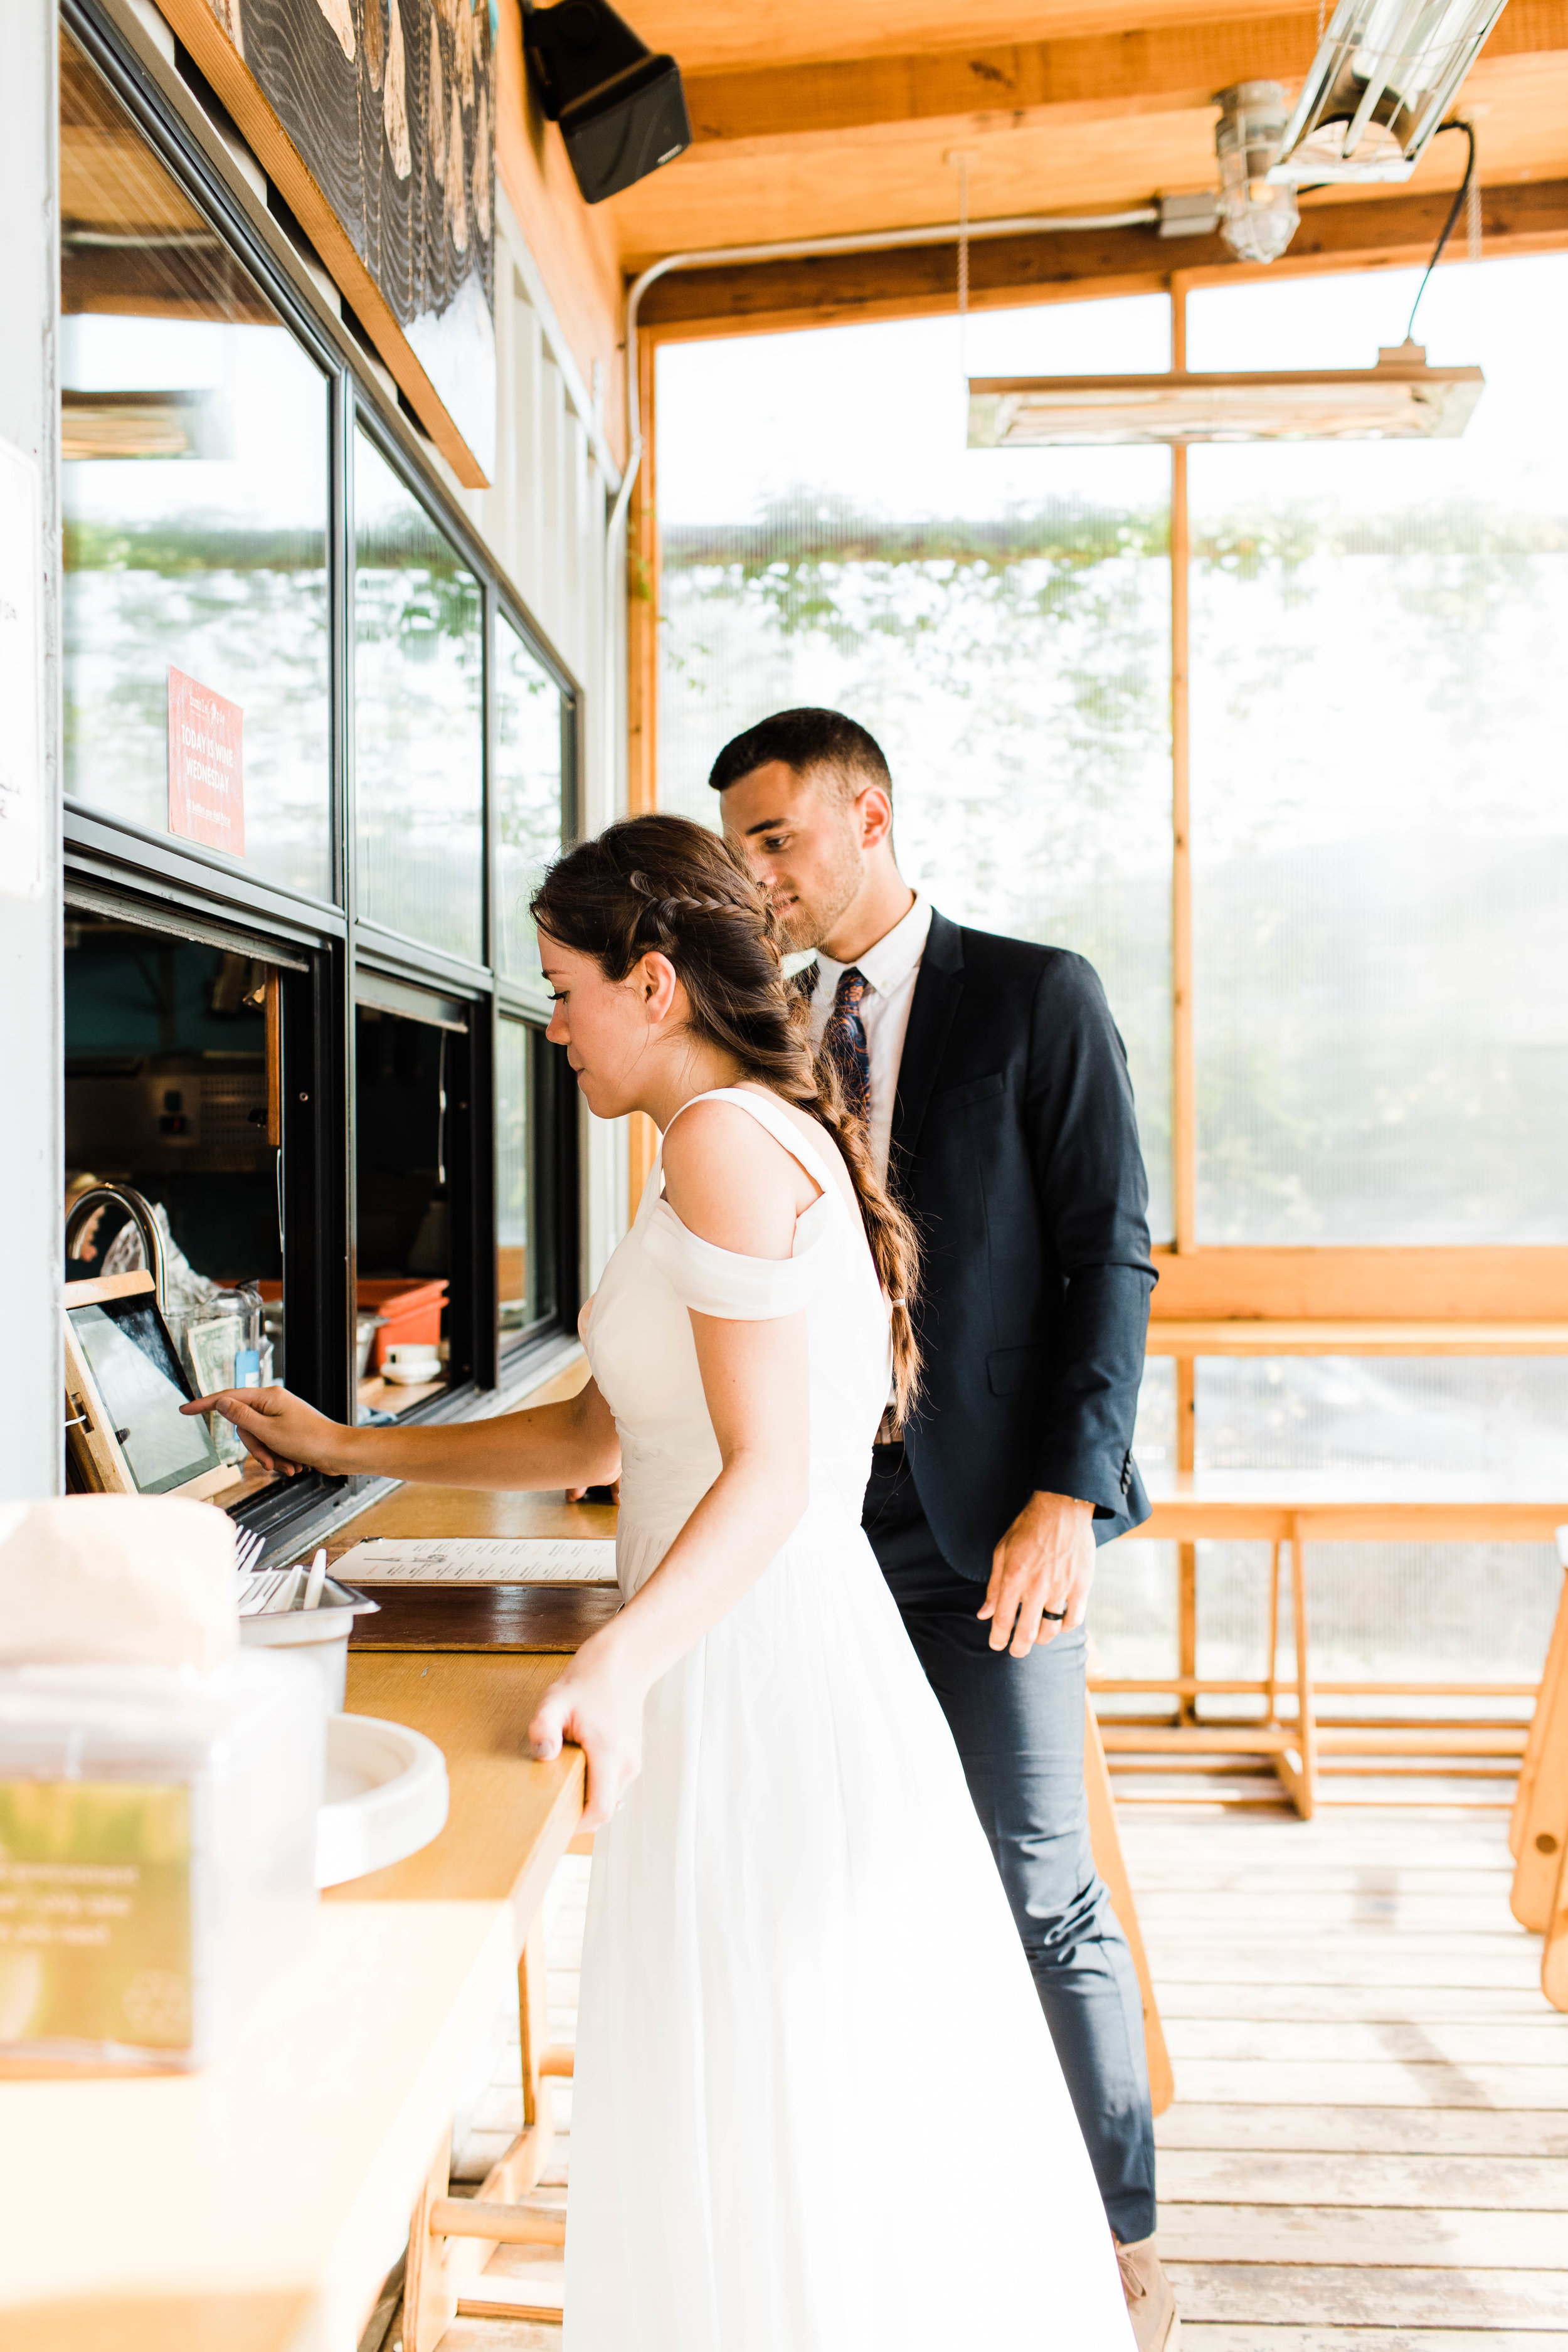 post-elopement pizza dinner at Humble Pie in Seattle Washington | Mt Rainier National Park wedding photographers